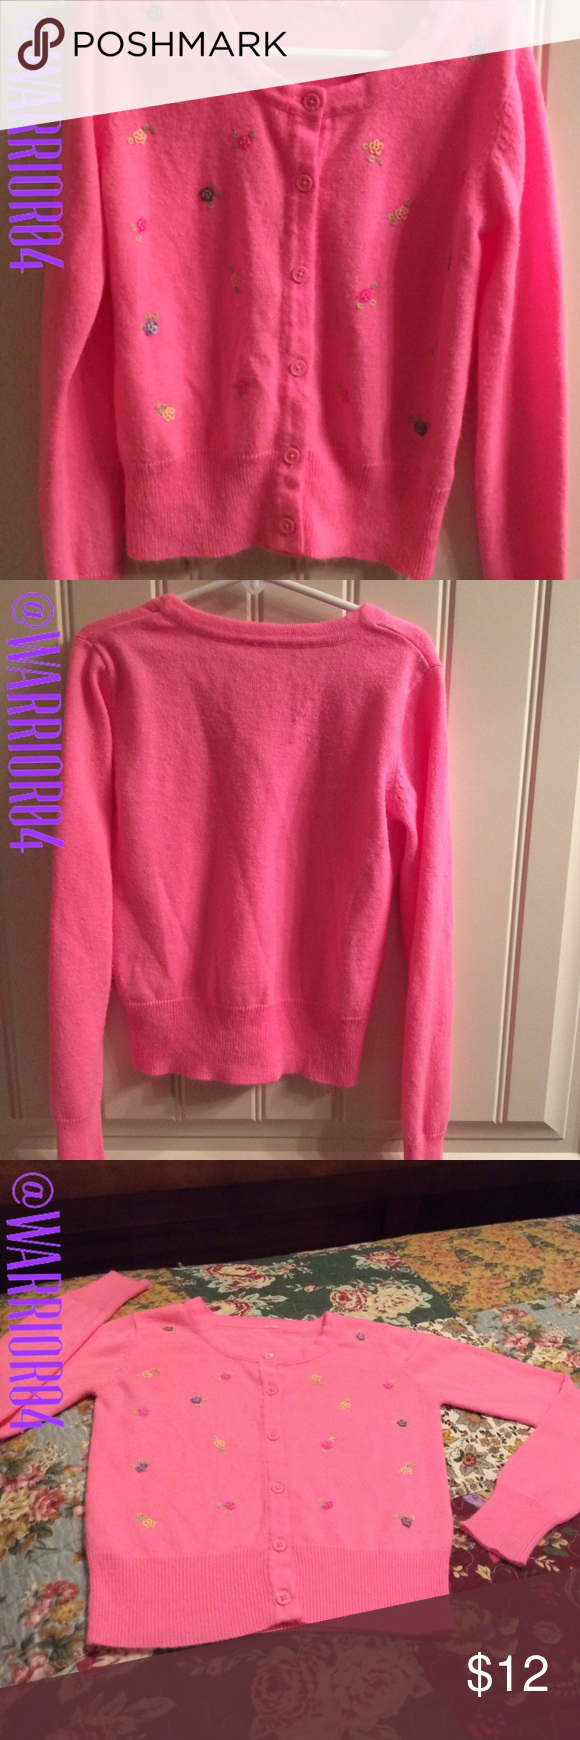 Pink Button Down Sweater Girls 7/8 Pink Button Down Sweater Girls ...